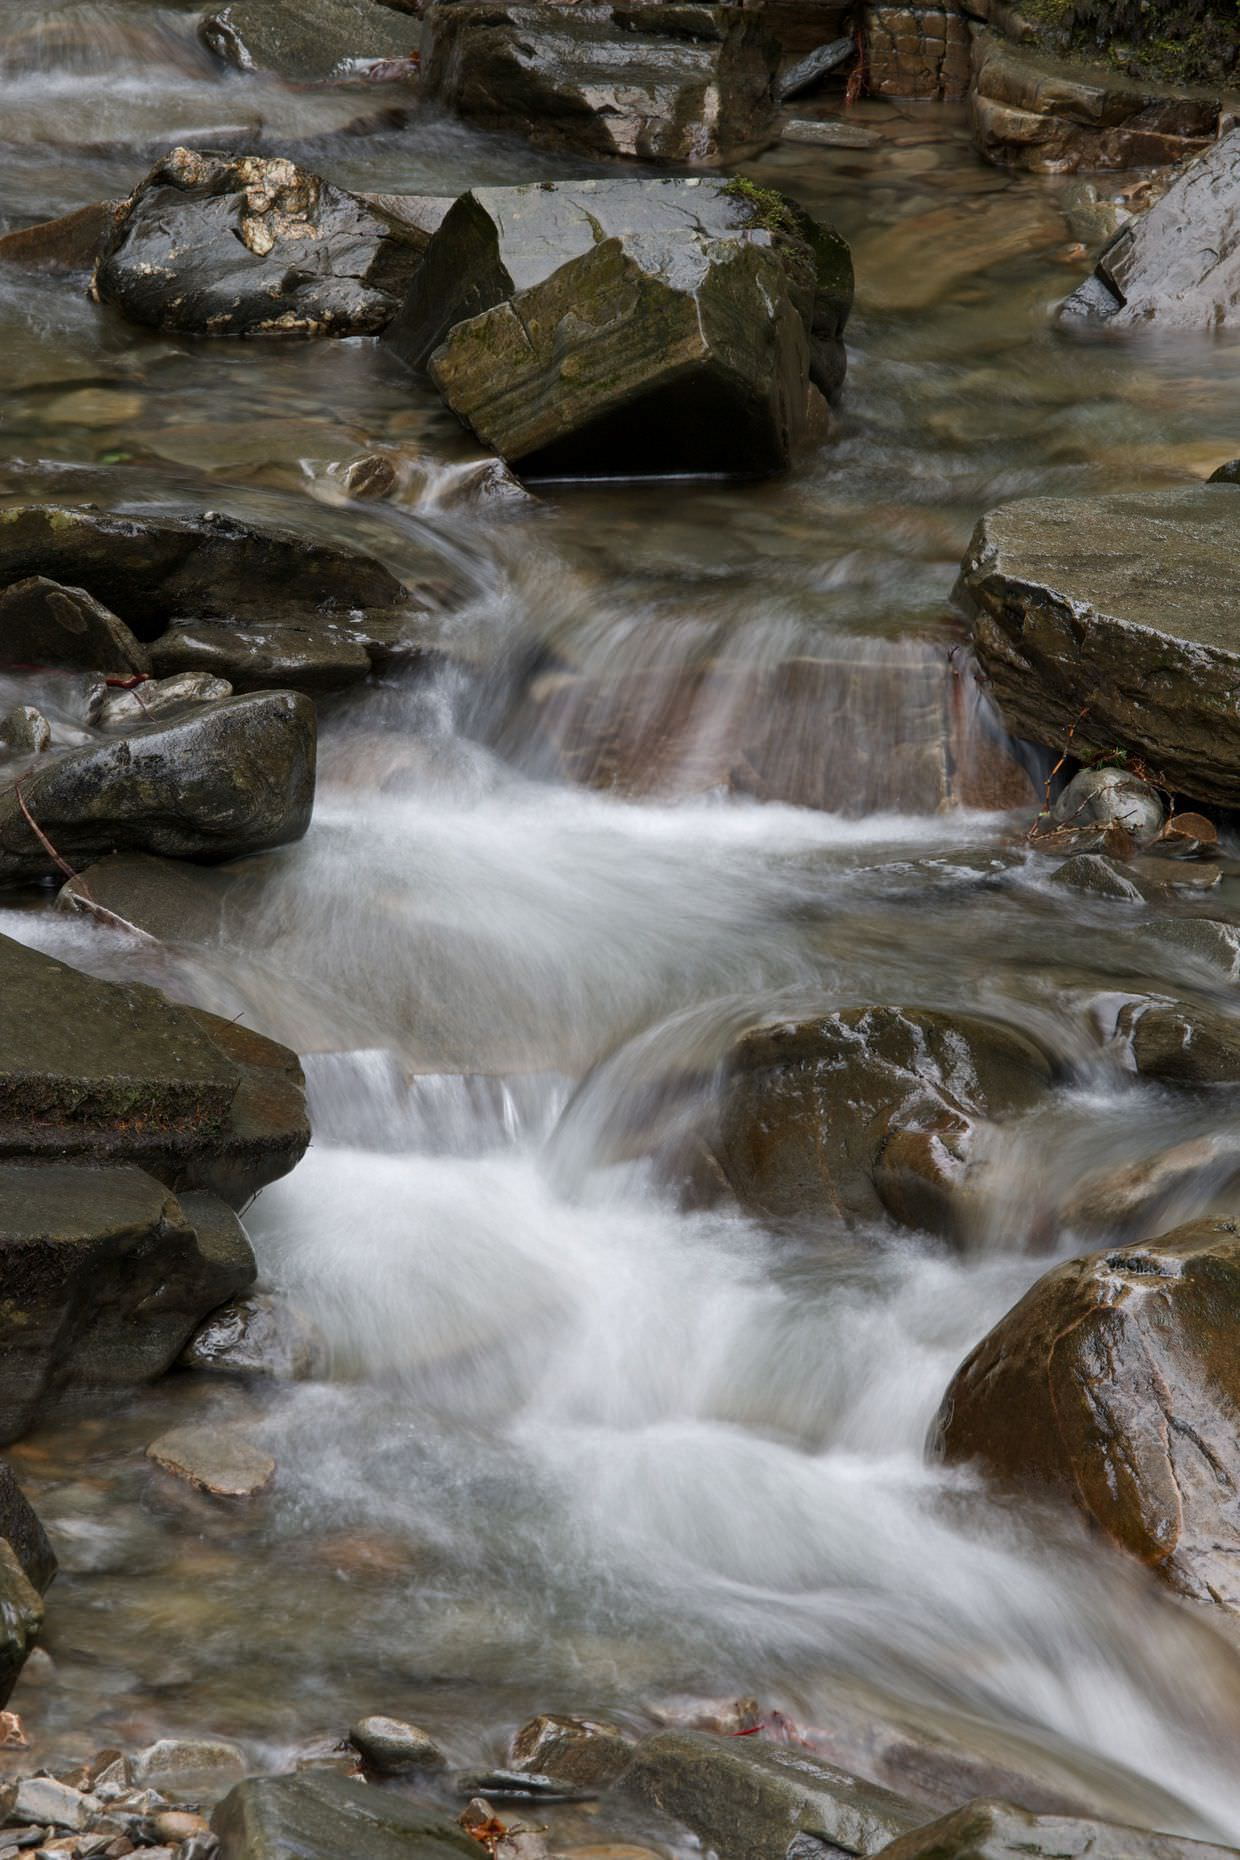 A stream, using a shutter speed that captures the stringy effect